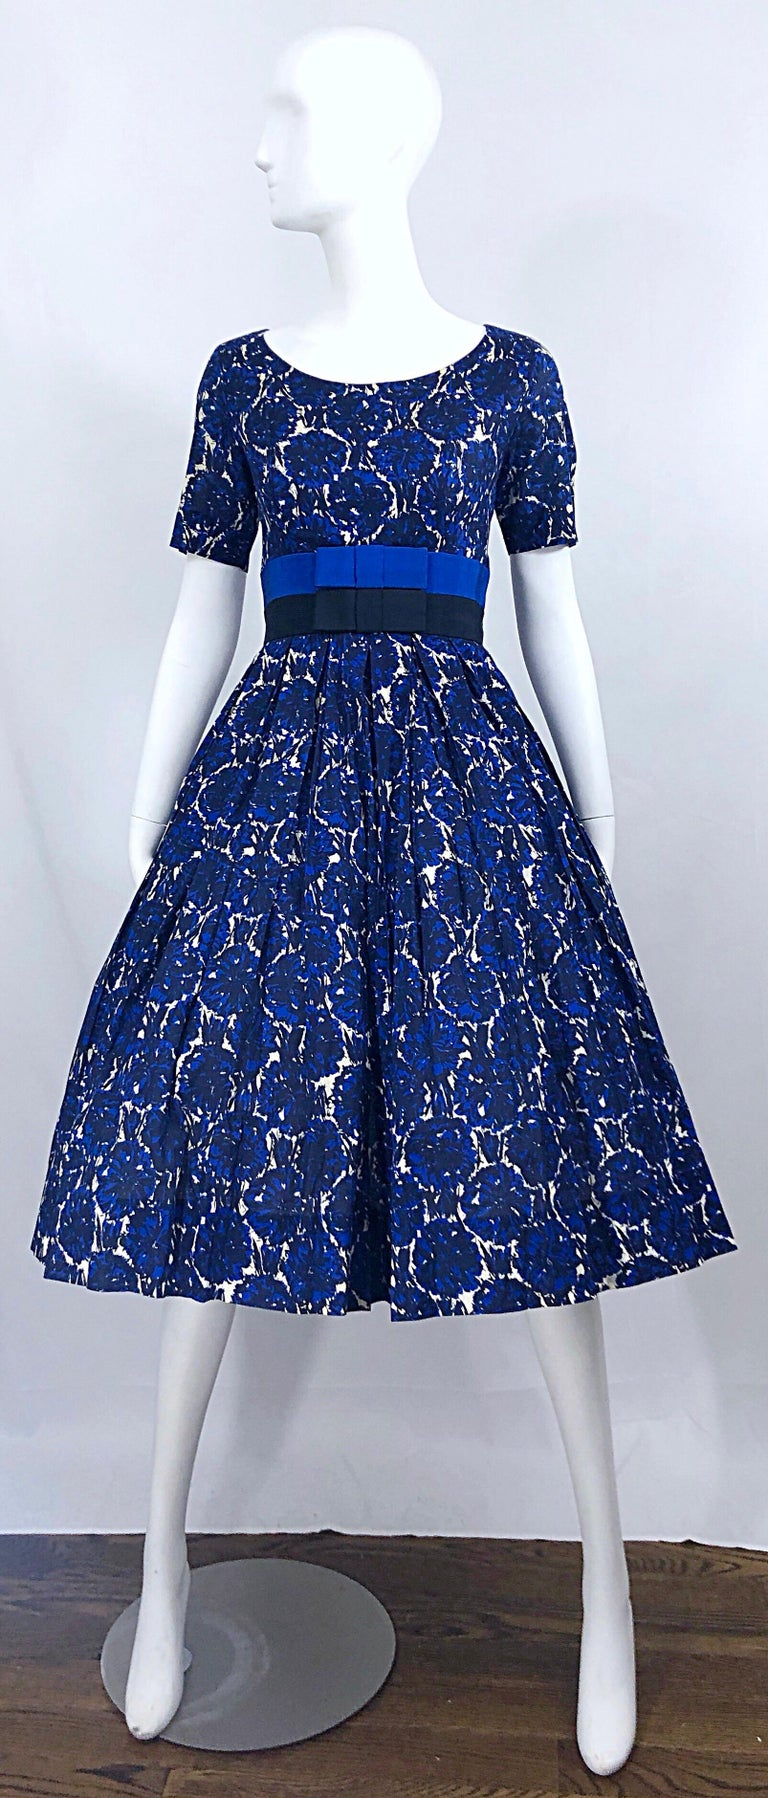 Phenomenal vintage 50s BONWIT TELLER demi couture blue abstract flower print fit n' flare cotton dress! Features a fitted bodice, with two bands of silk grosgrain bows in blue and black. Full skirt has plenty of room to accomodate a crinoline for